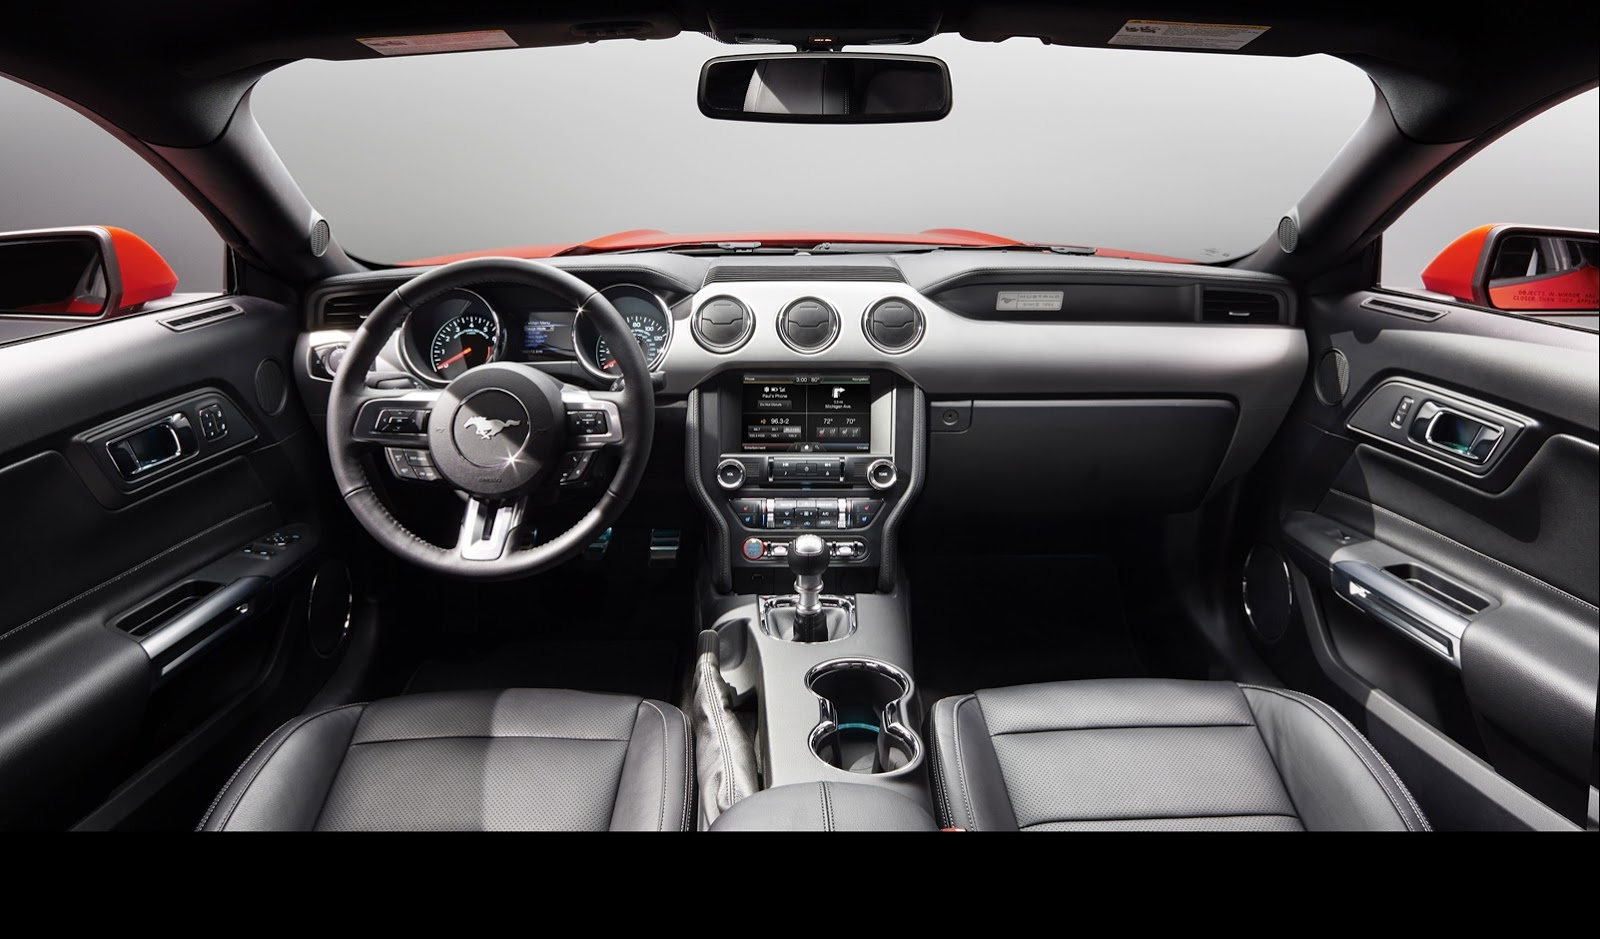 2014 - [Ford] Mustang VII - Page 6 2015-Ford-Mustang-Photos-44%25255B3%25255D